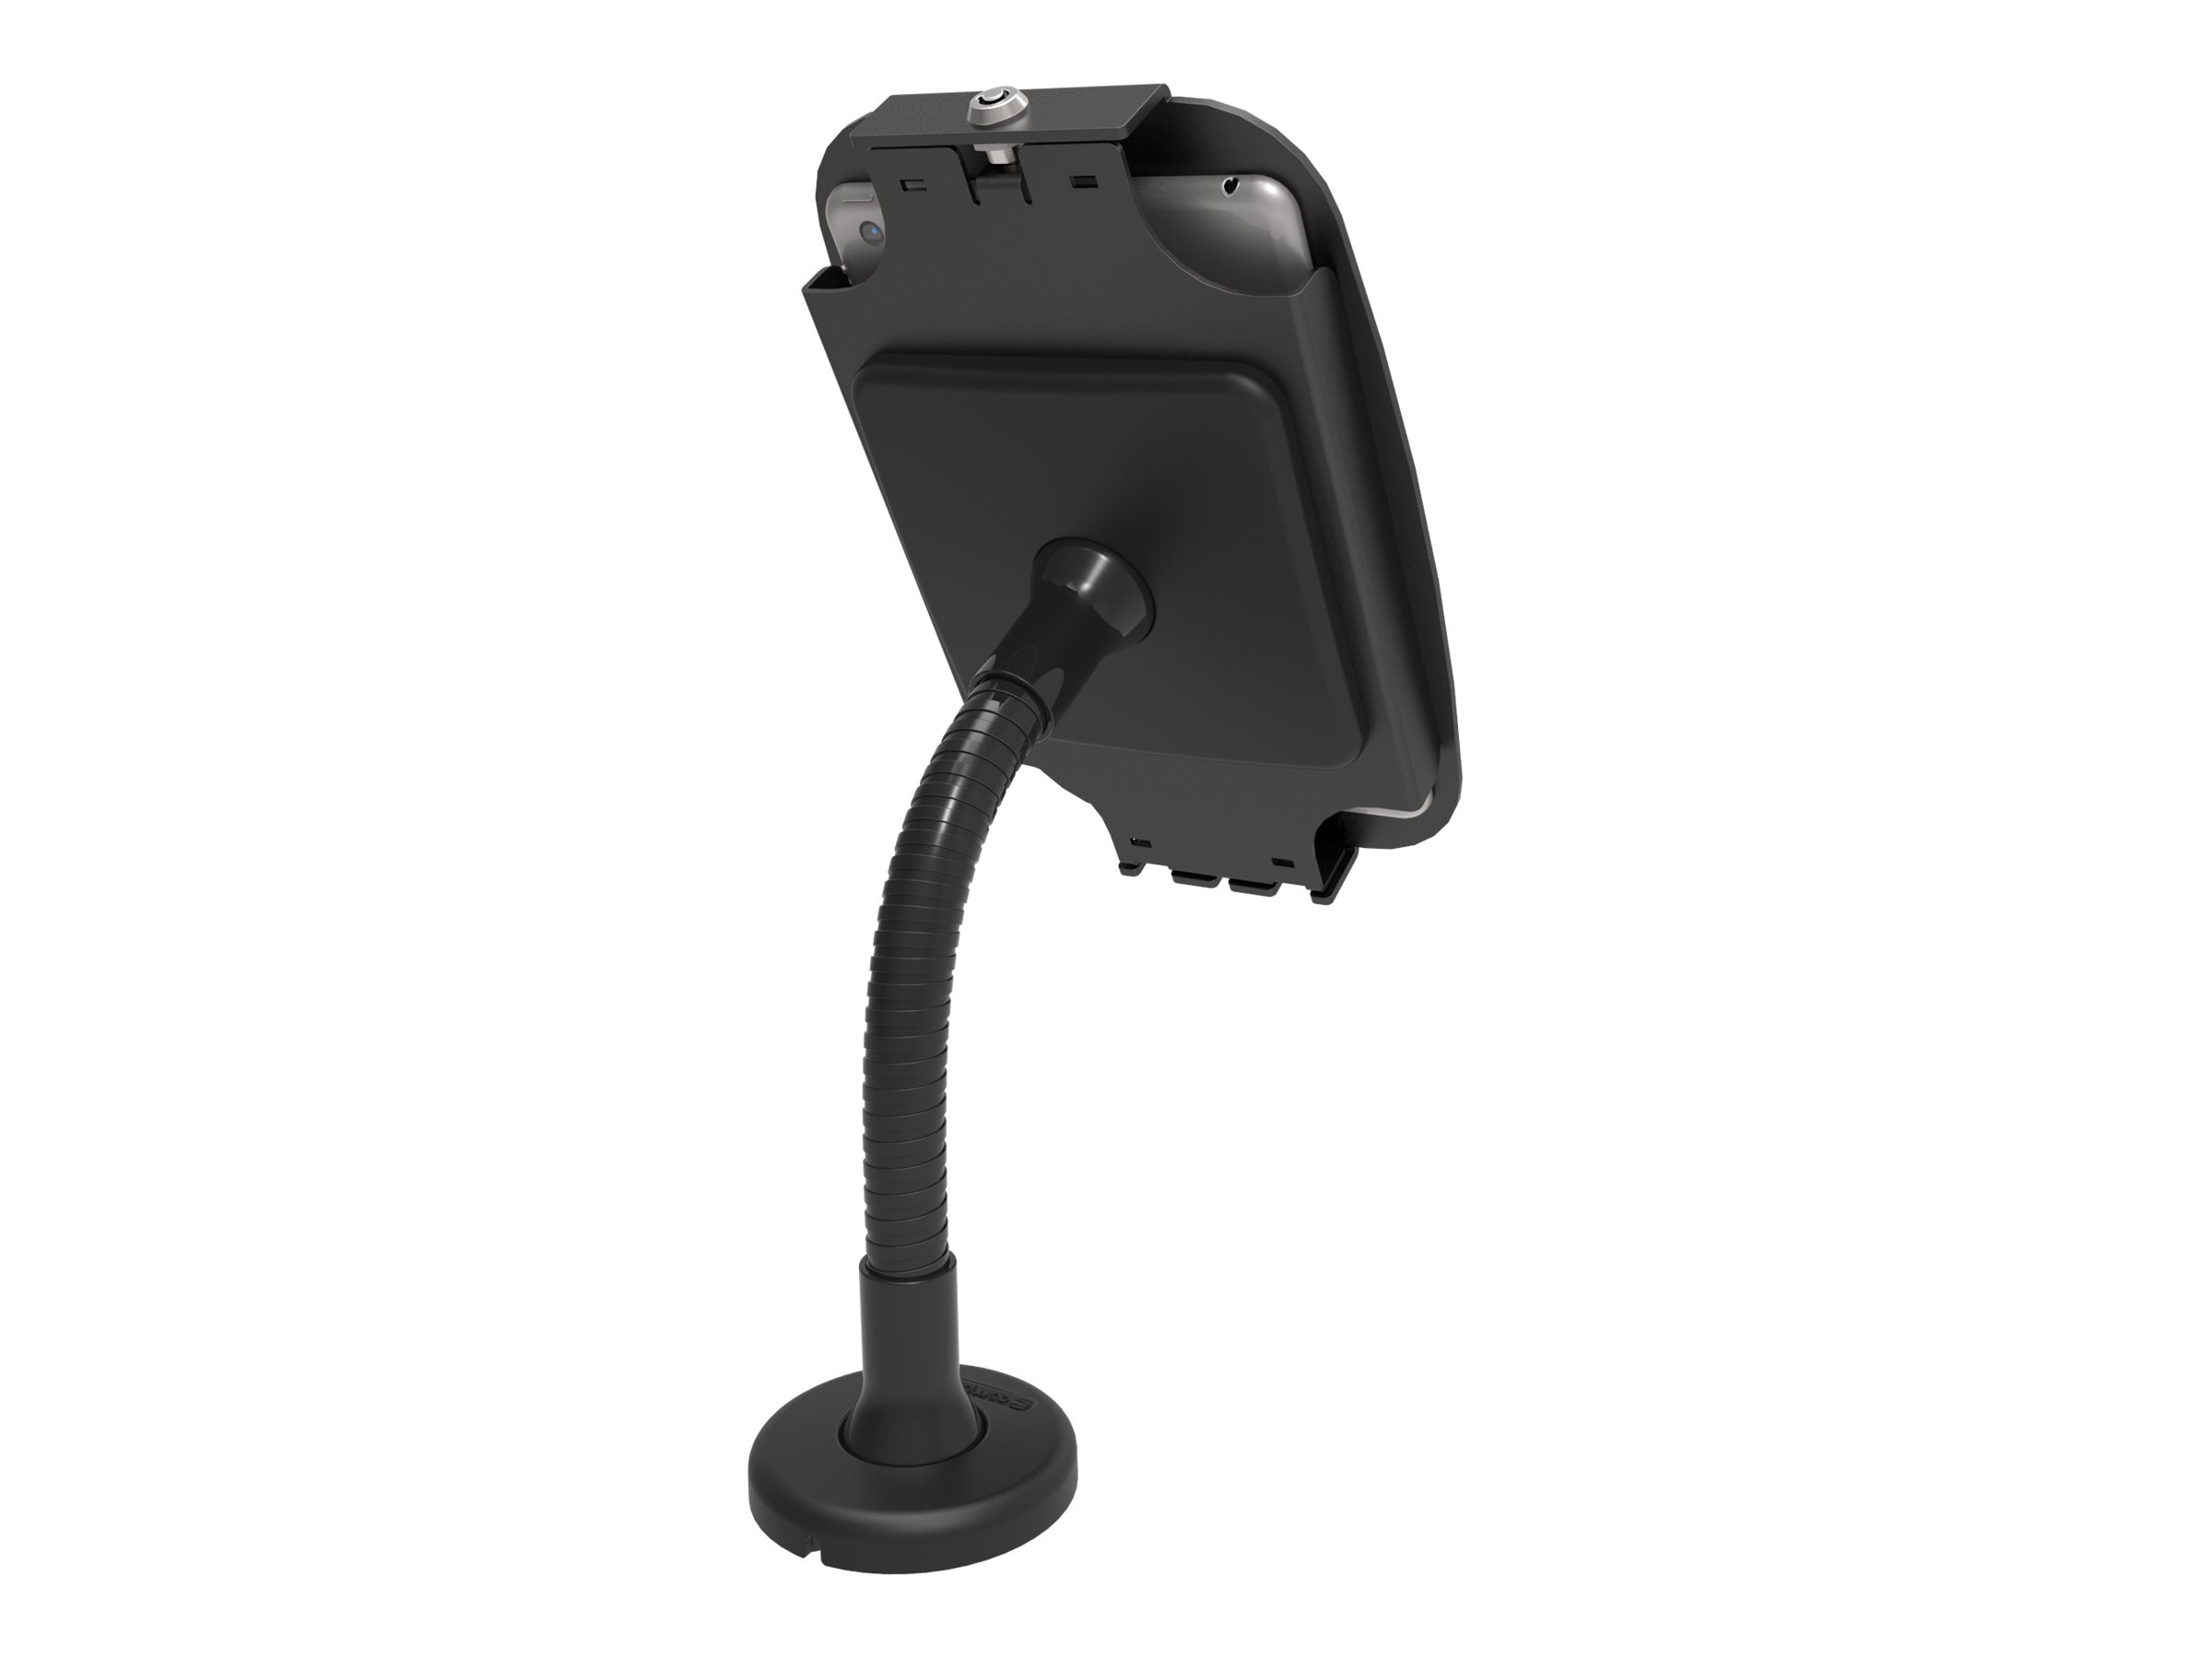 Compulocks Surface Pro 3 Space Enclosure with Tablet Kiosk Flexible Arm Mount, Black, 159B530GEB